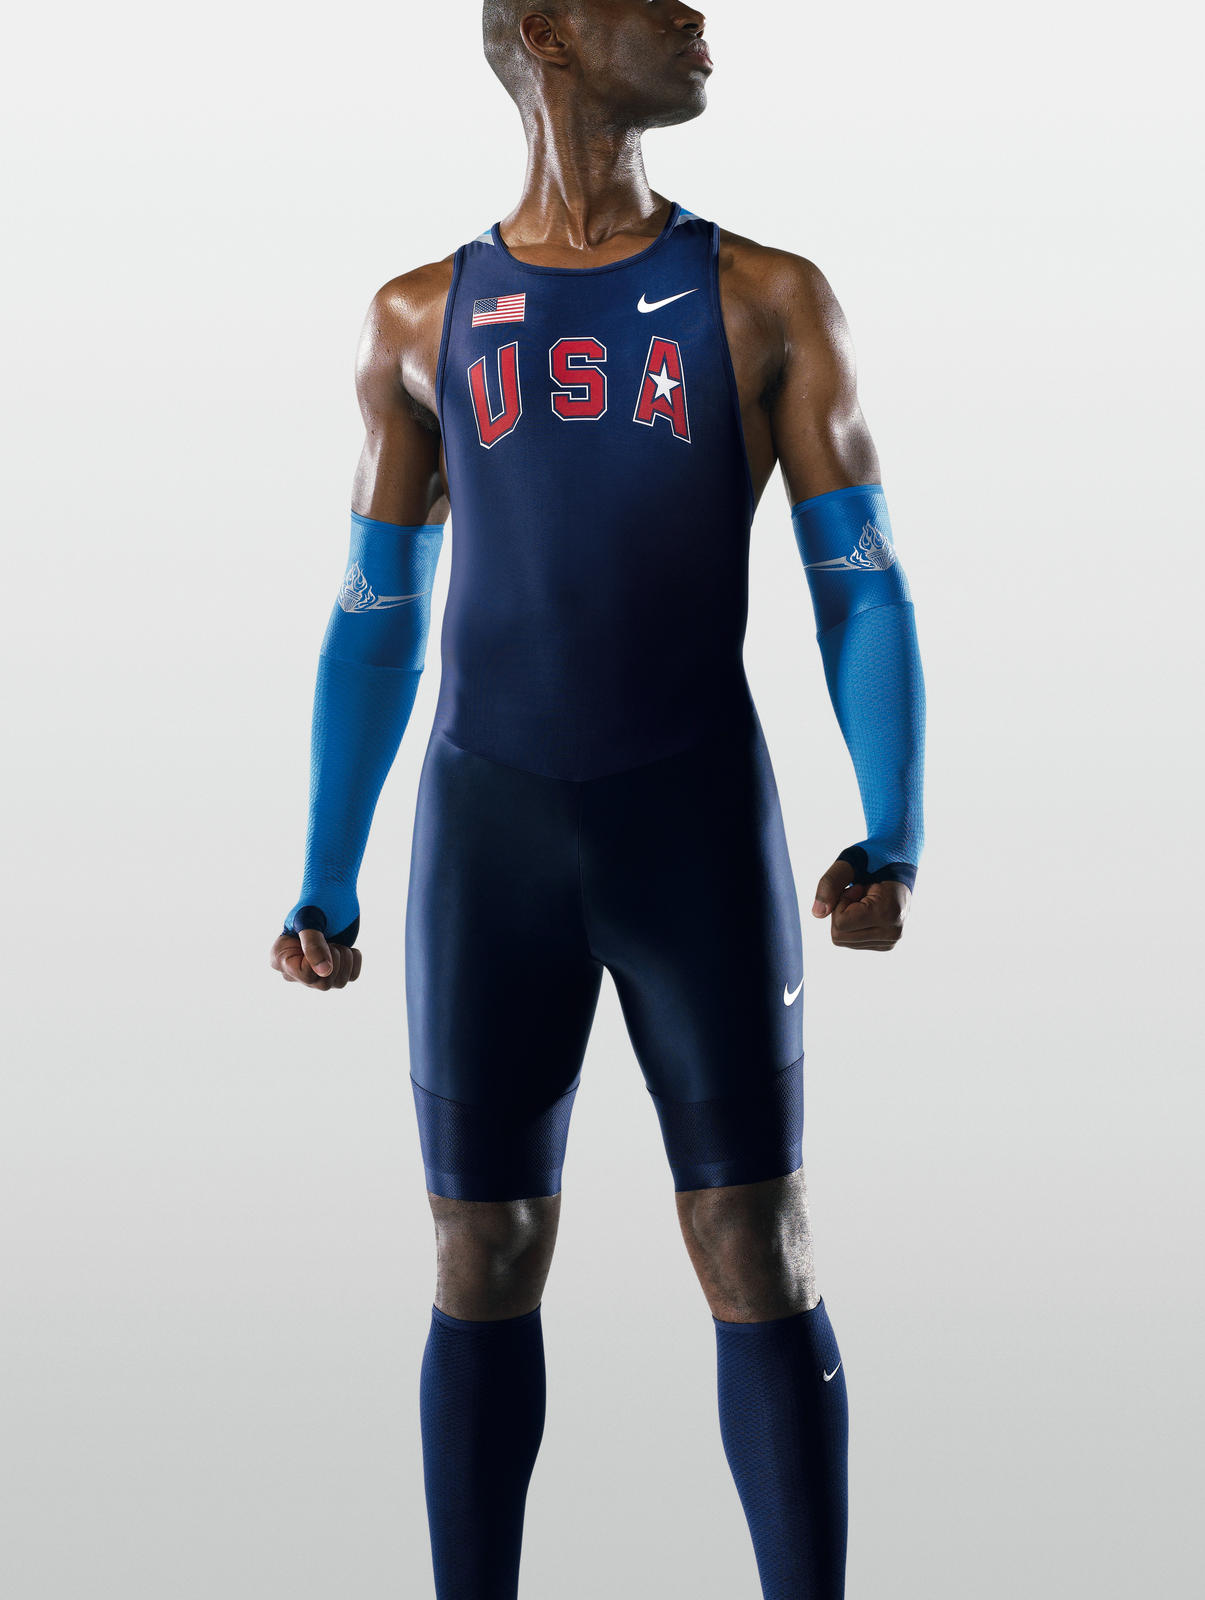 Nike Unveils Team Usa 2008 Beijing Footwear And Apparel